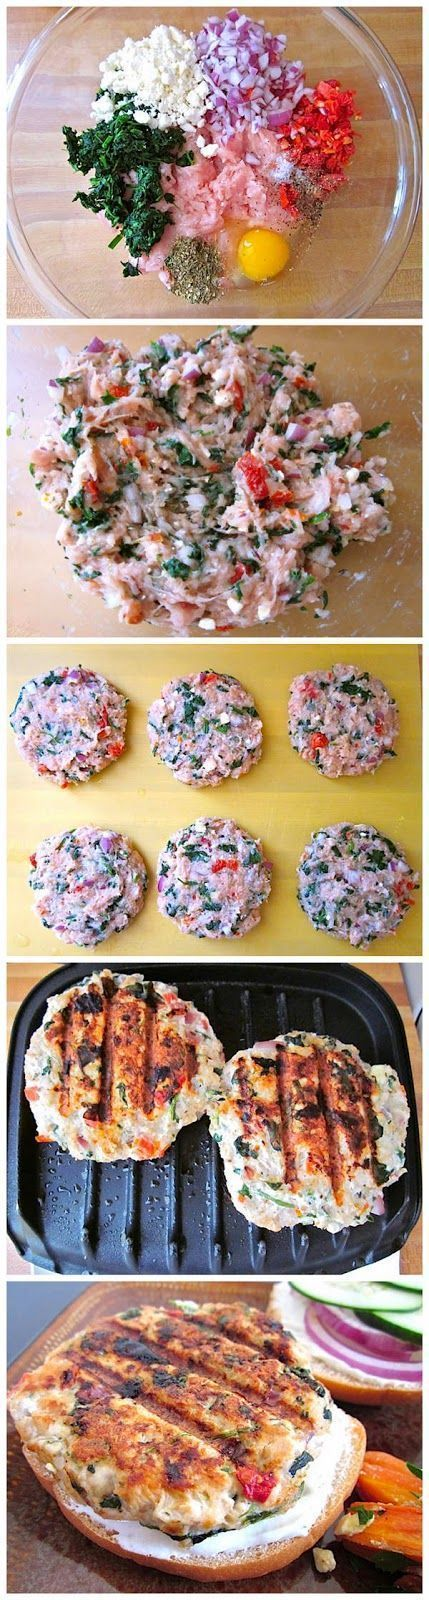 Greek Turkey Burgers || For #recipes, #health, and #fitness challenges go to my website or message me: www.beachbodycoach.com/kristijeffres